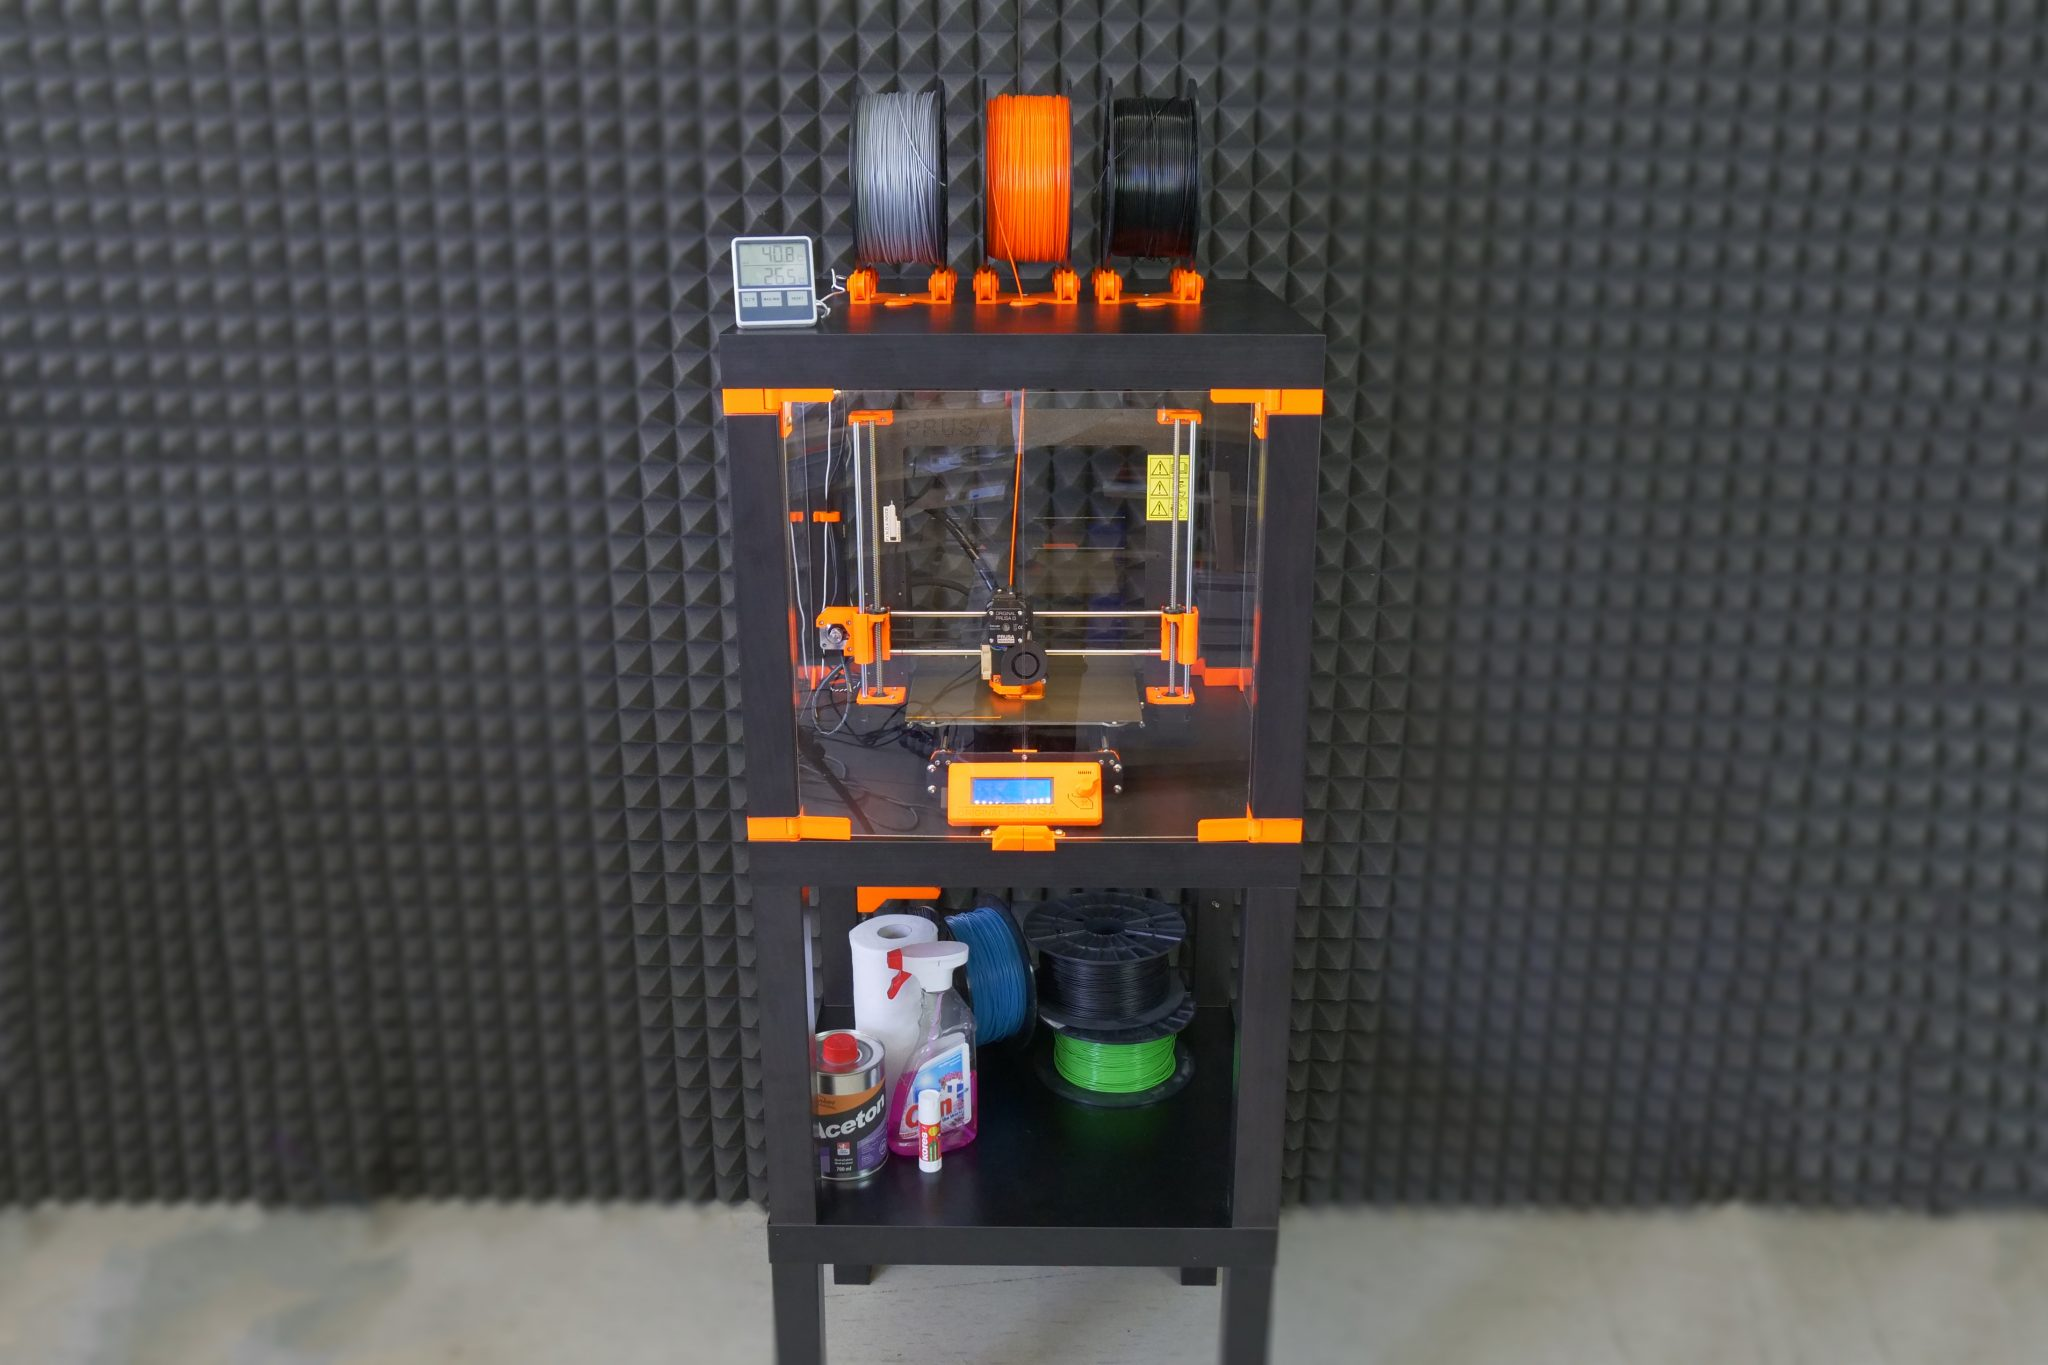 Gfk Pool Duisburg 7 Must Have Mods For 3d Printing Cnc Routing And Lasering Iot